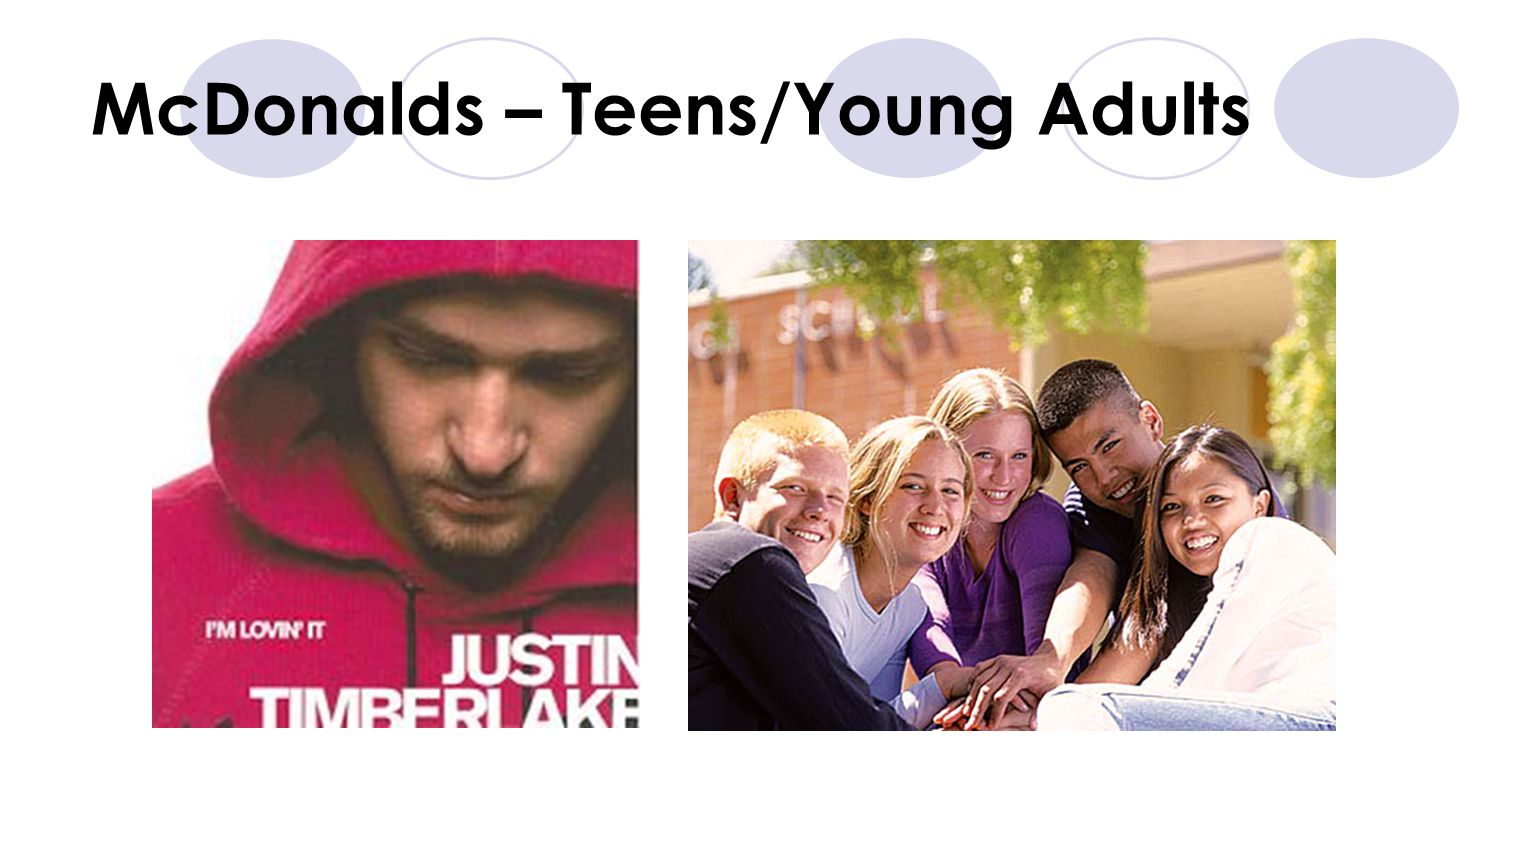 McDonalds – Teens/Young Adults